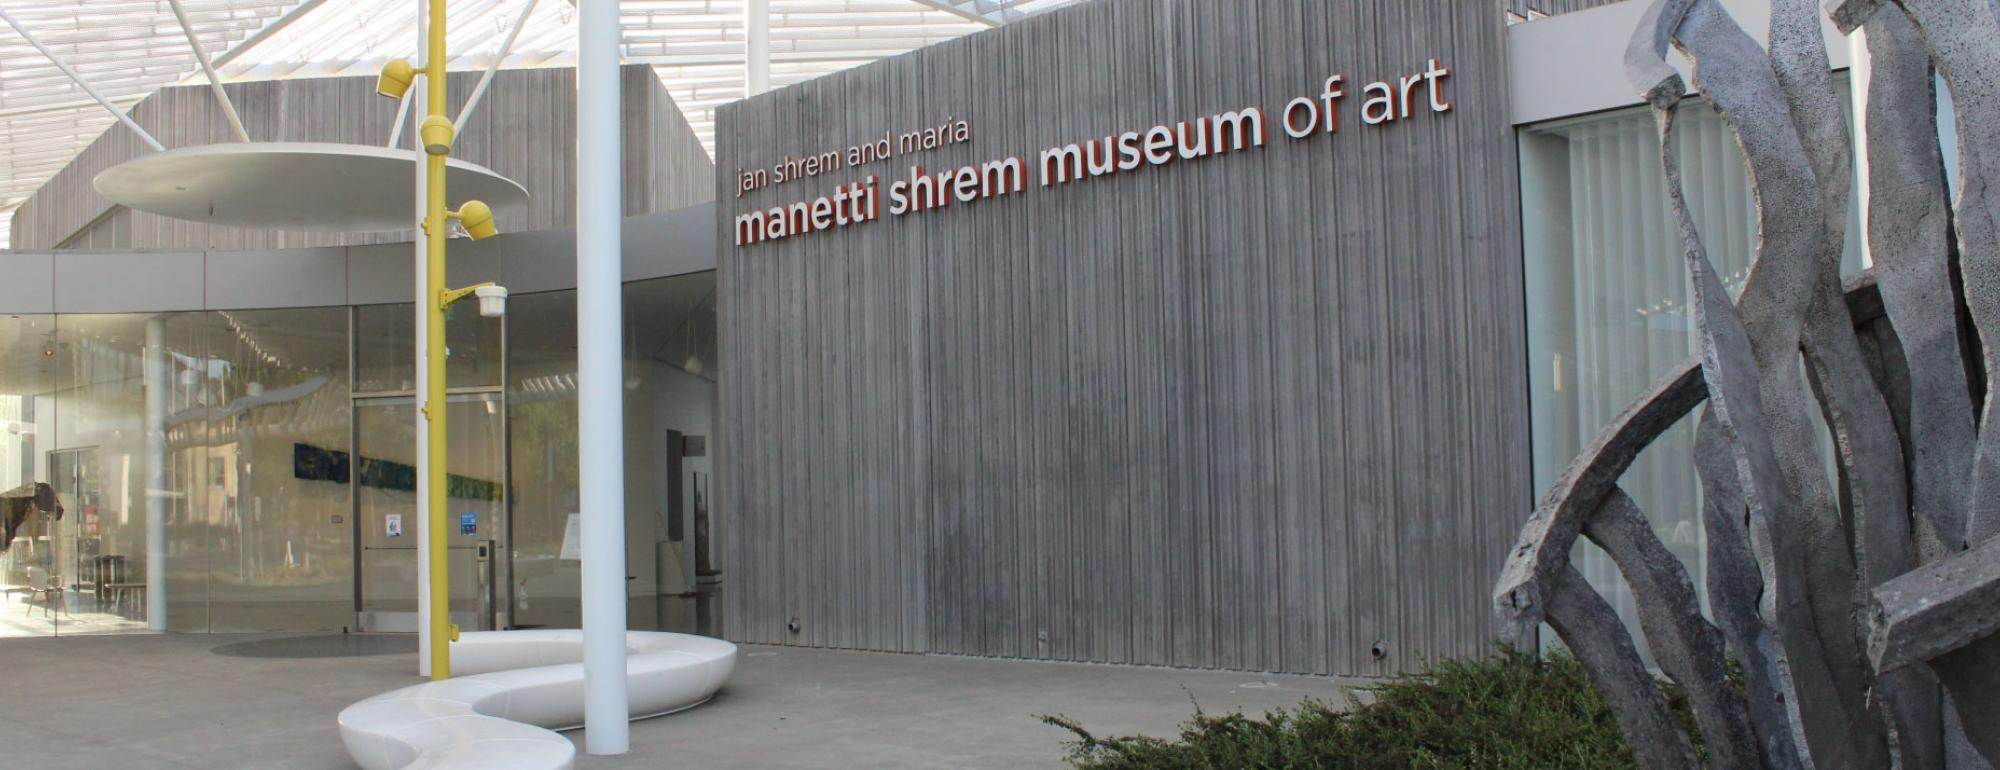 The museum plaza looking towards the front doors.